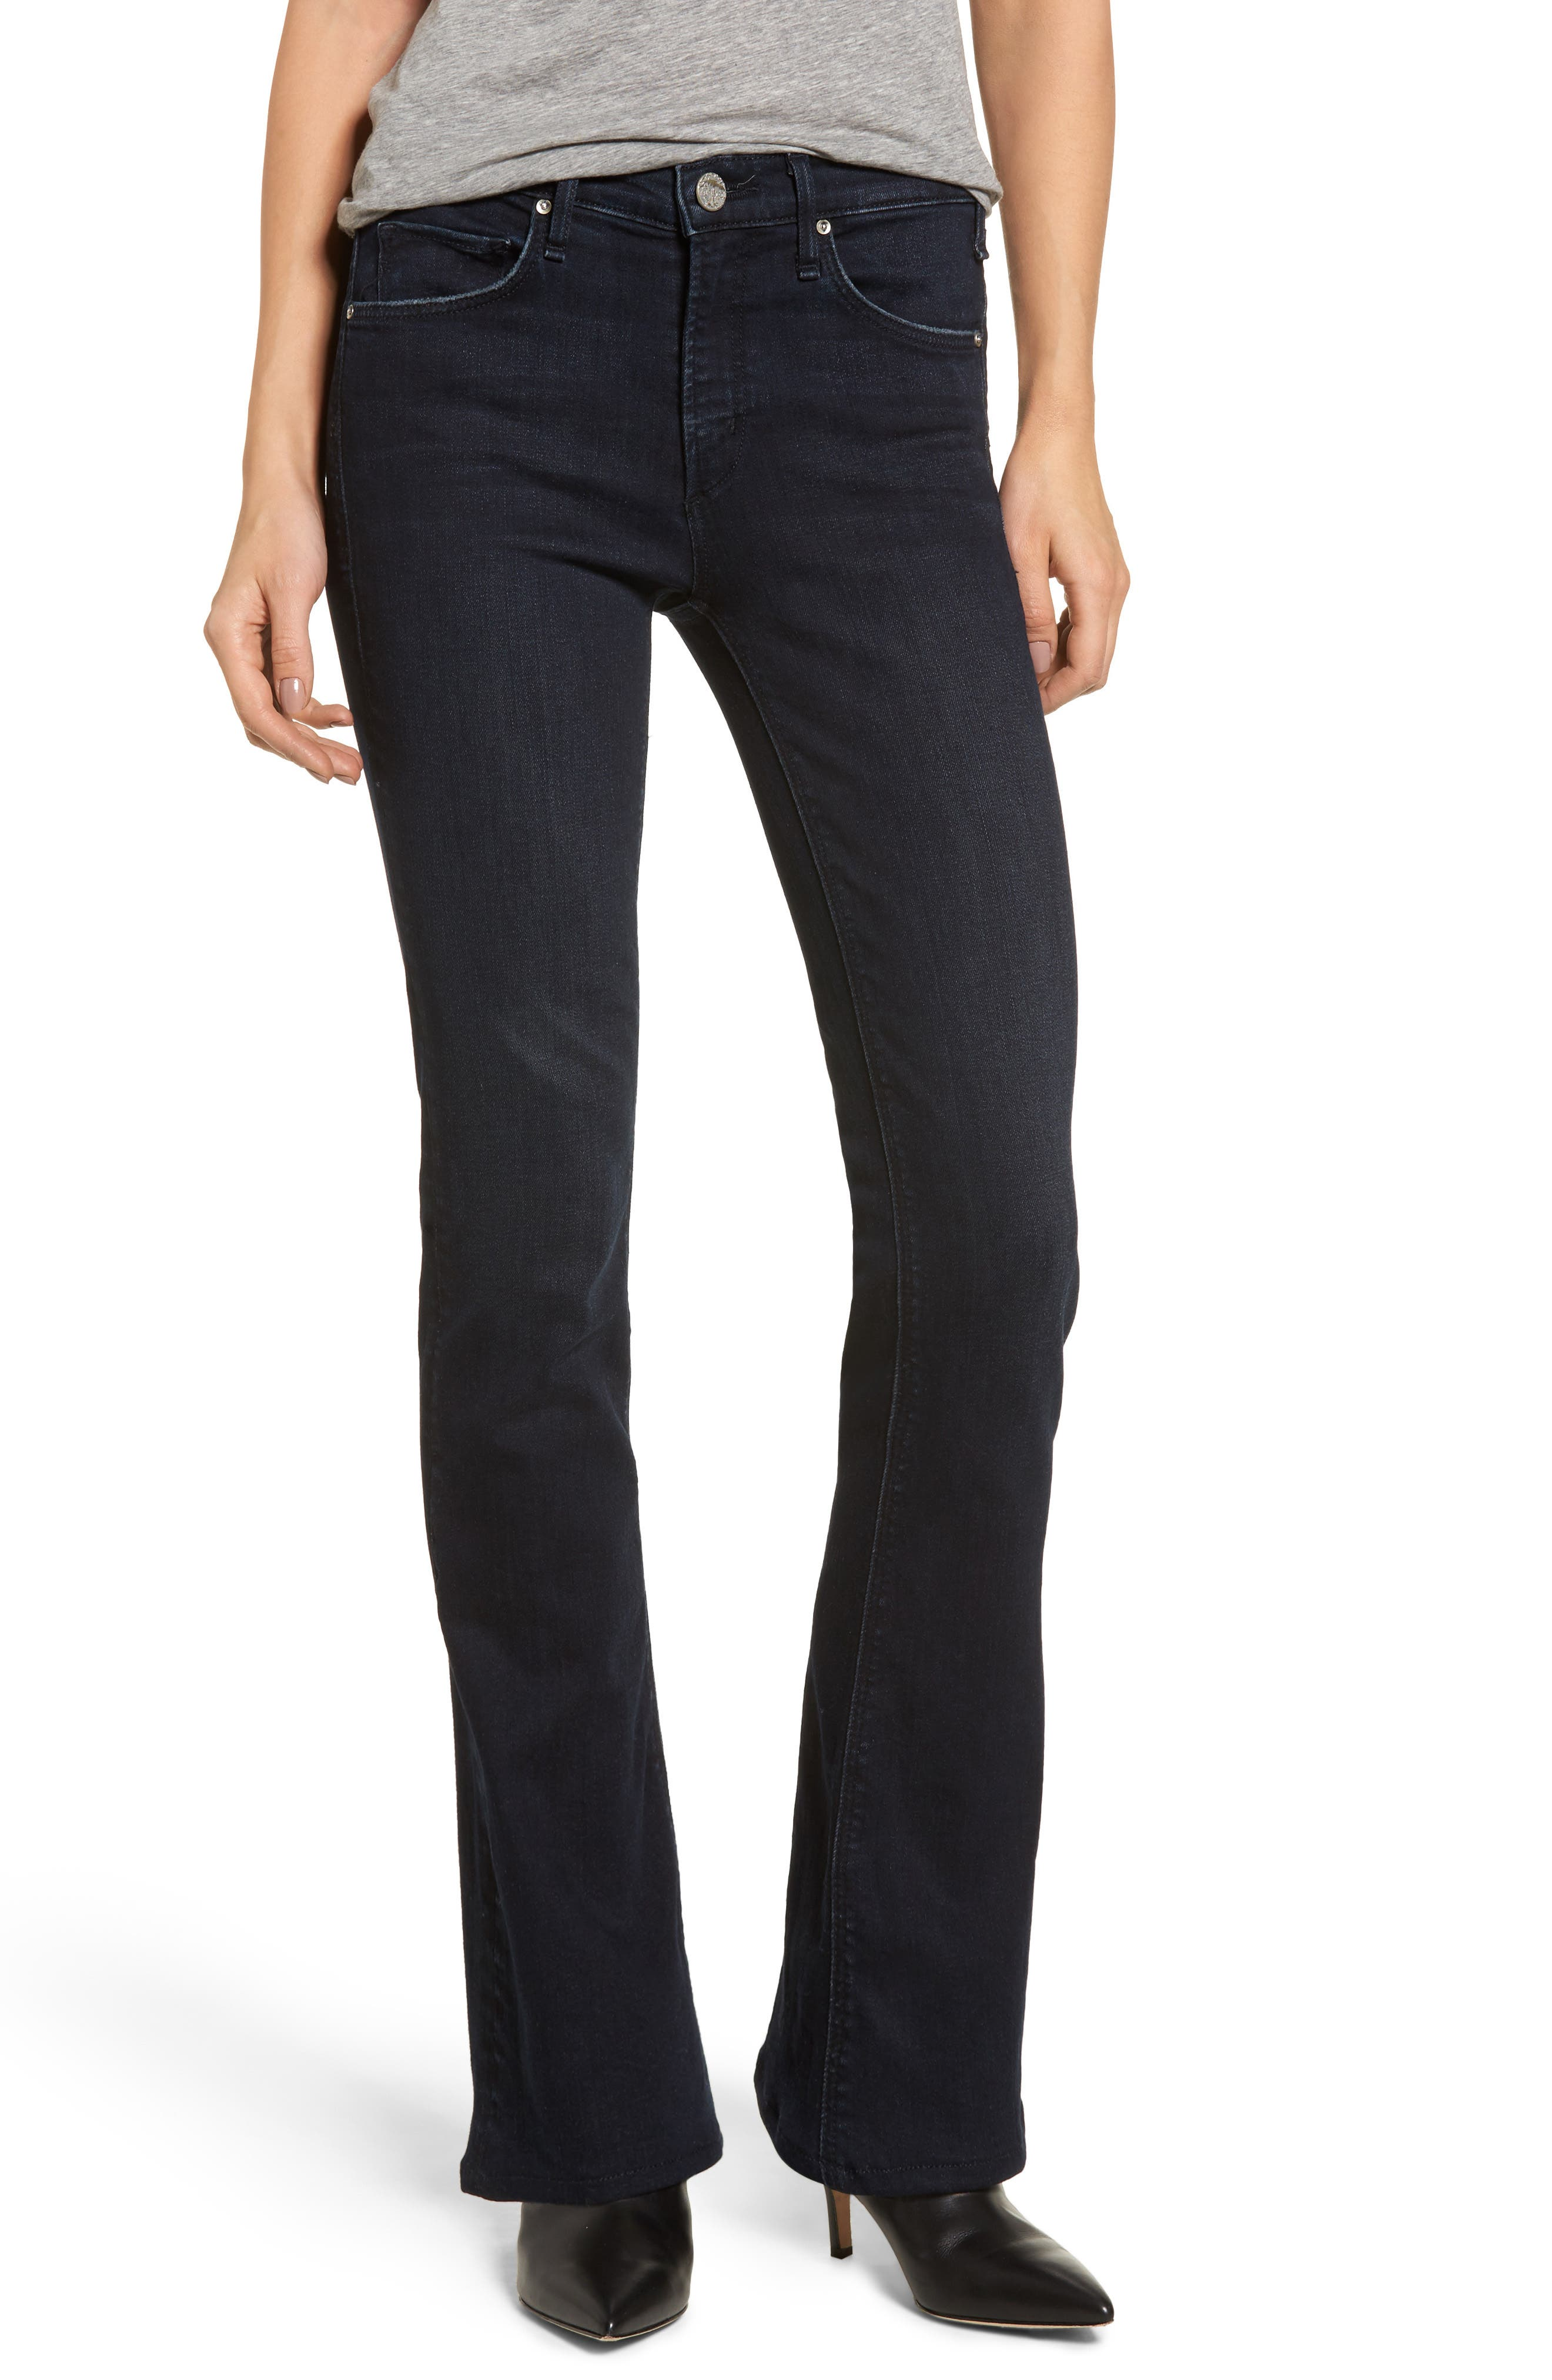 Main Image - McGuire Gainsbourg Bootcut Jeans (Aja)